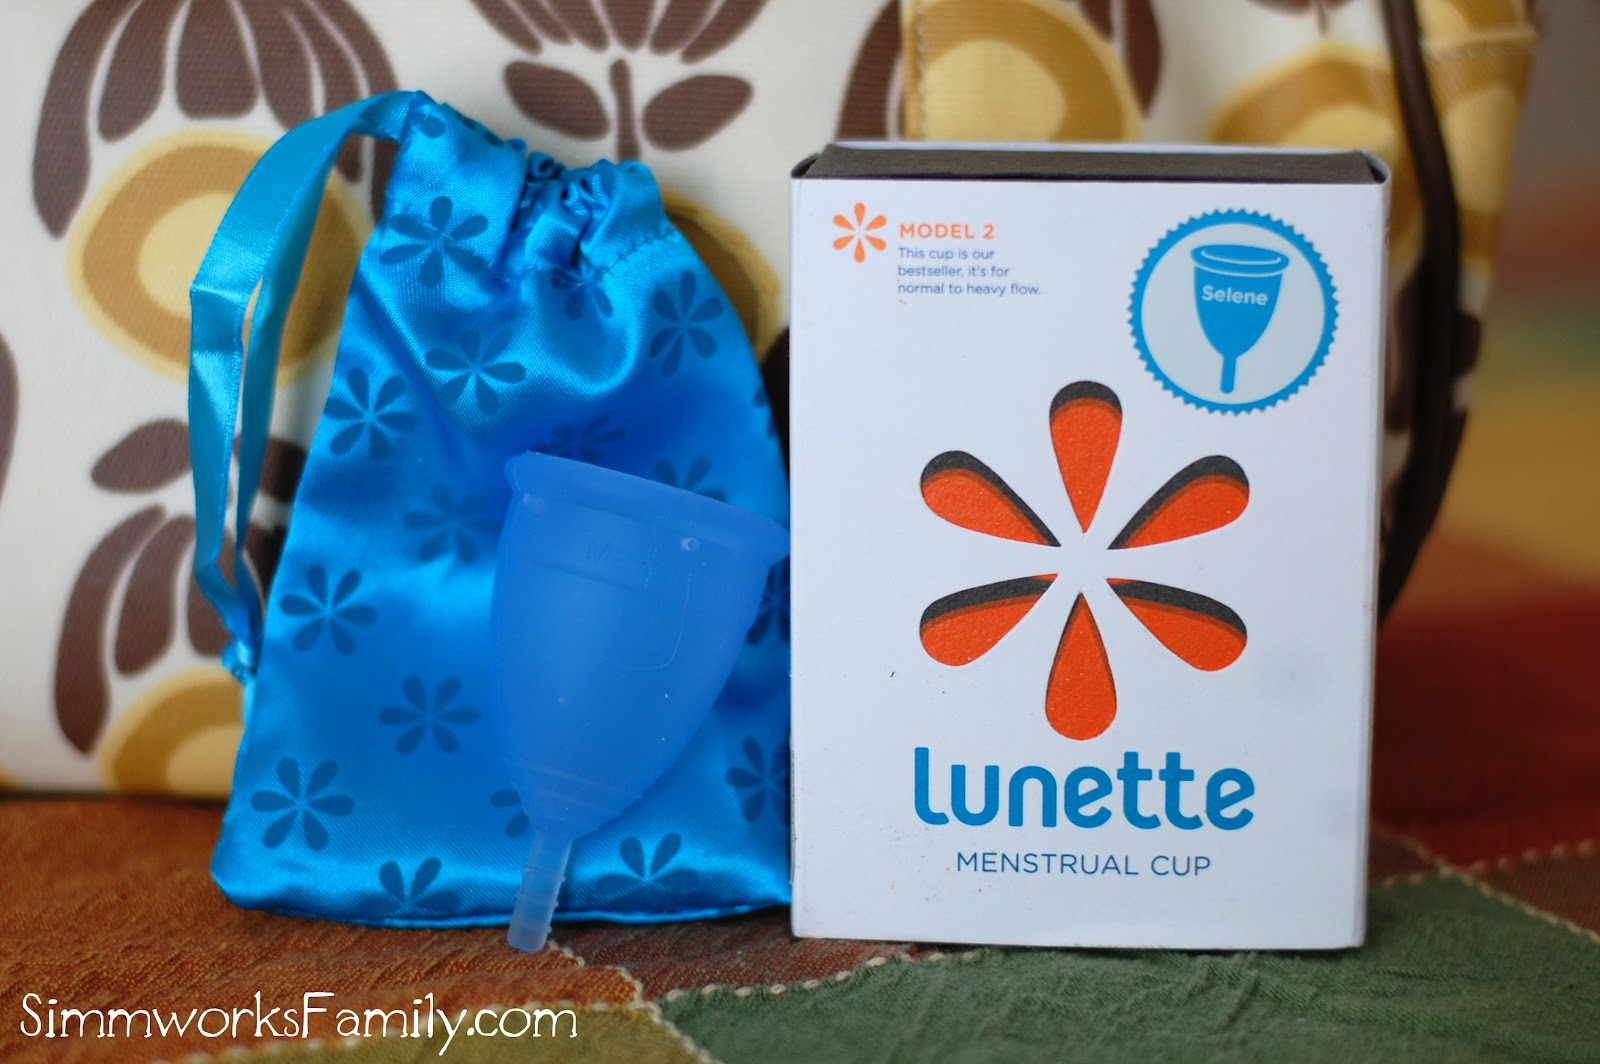 Lunette Cup Giveaway The Lunette Menstrual Cup is a